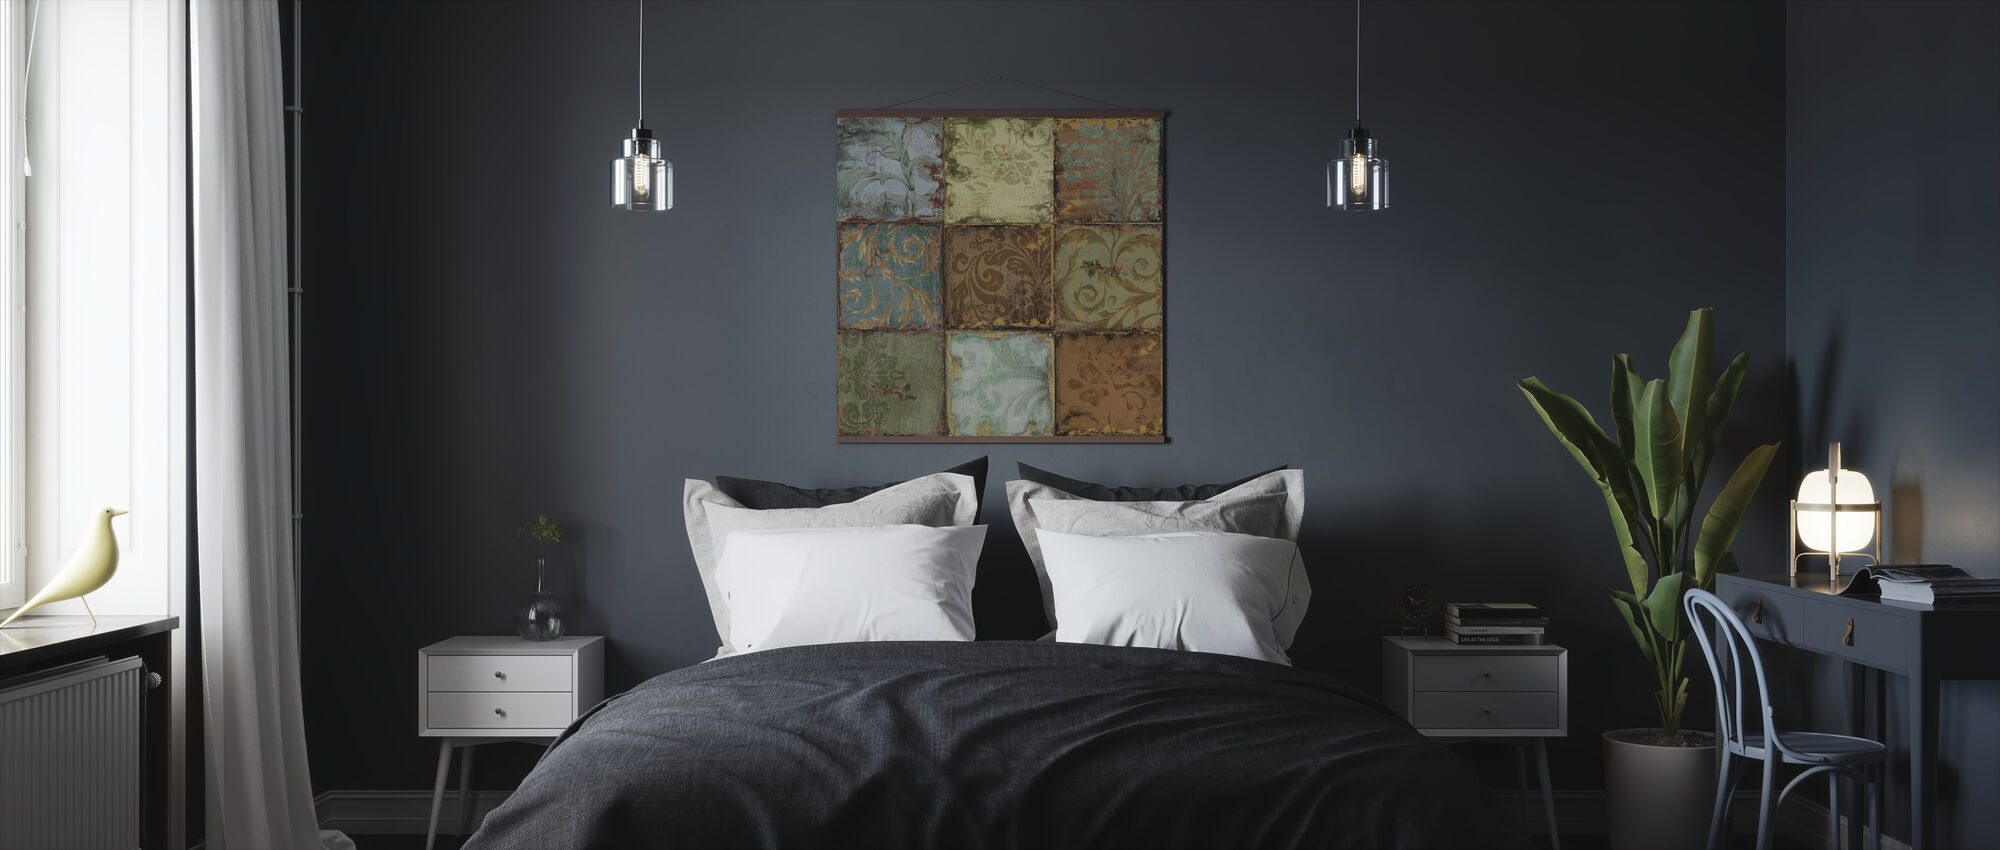 Tapestry Tiles 1 - Poster - Bedroom